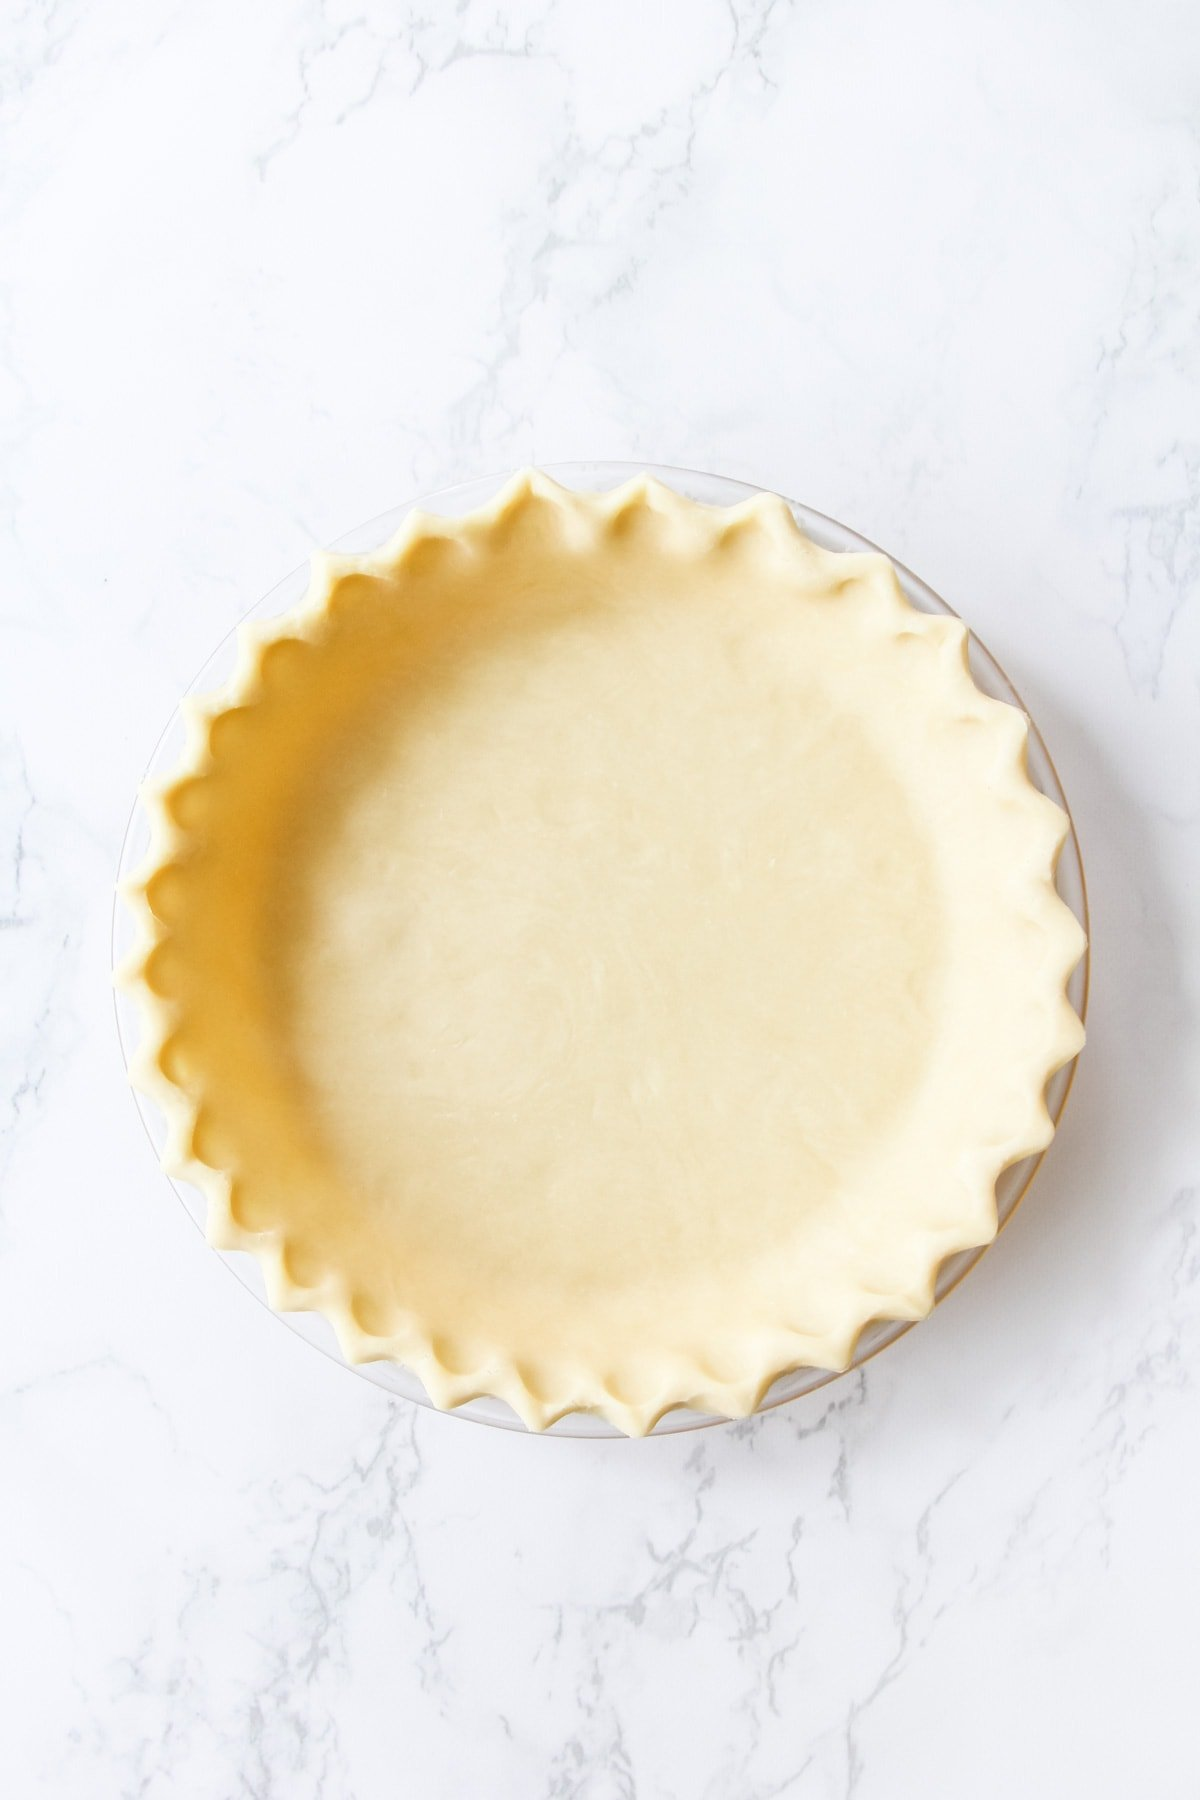 a top down view of an unbaked Crimped Pie Crust on a marble background